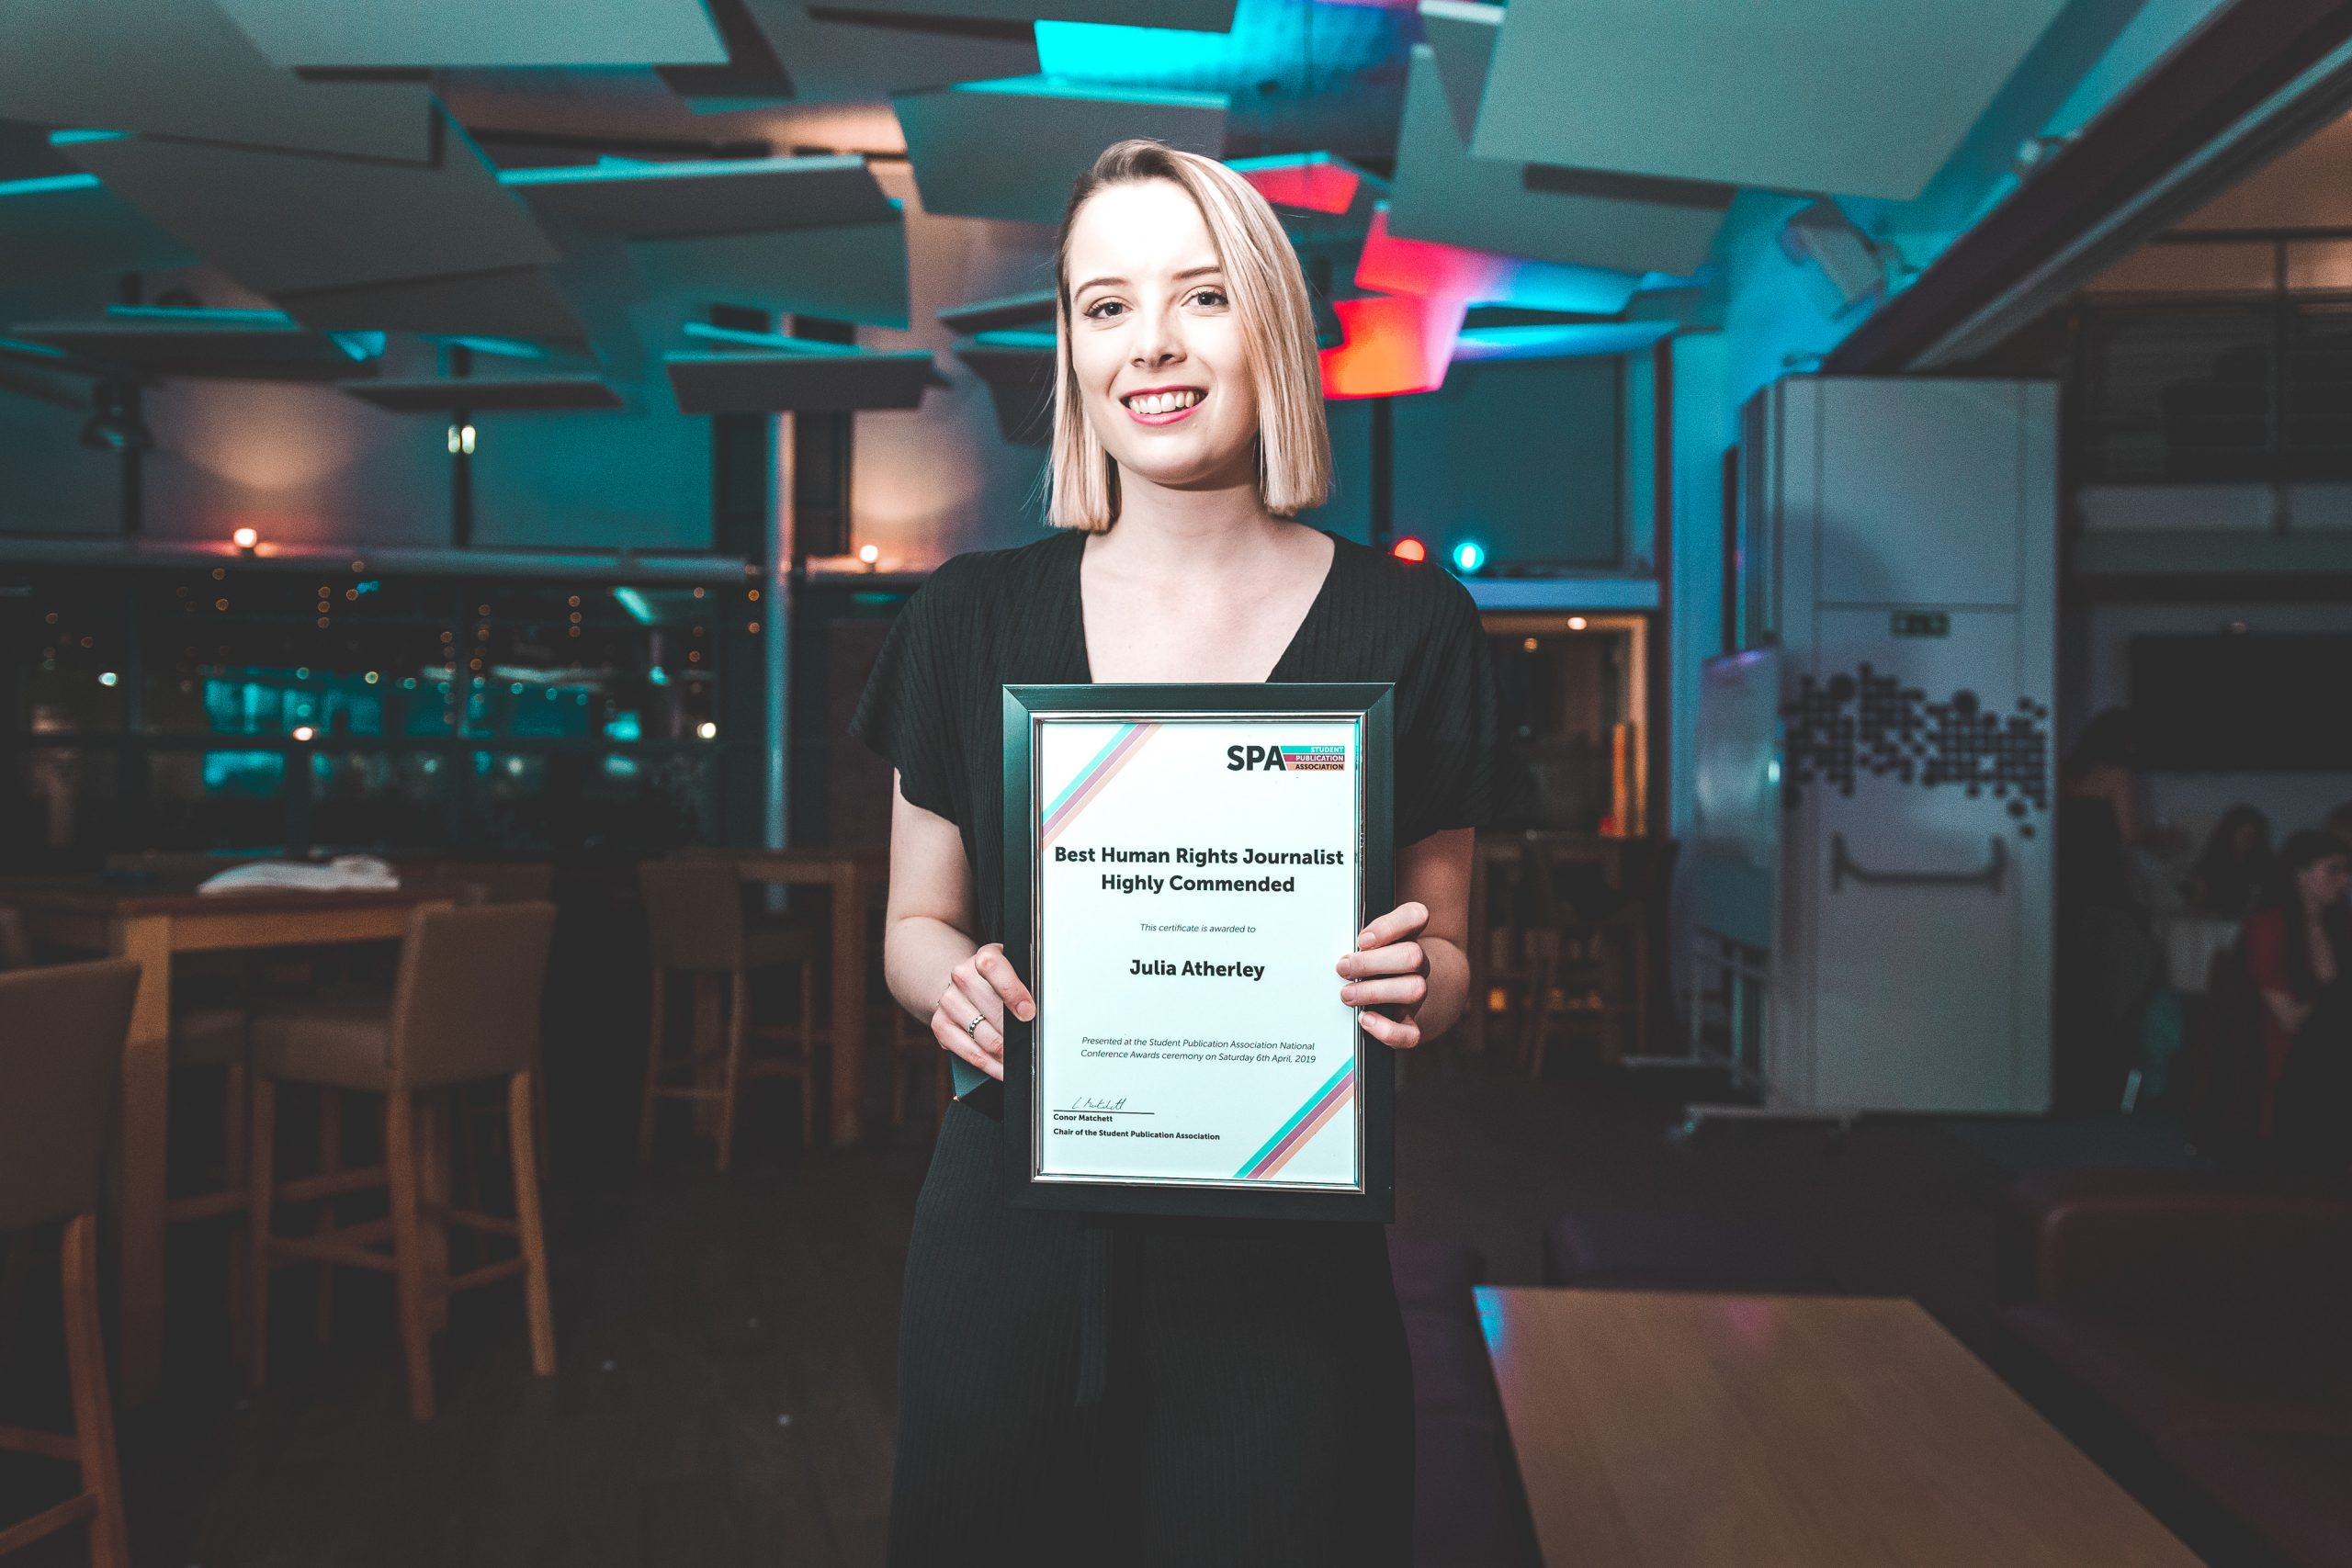 News Associates alumna Julia with her award at the SPA National Conference in 2019. 2019. She's holding her framed certificate posing at the camera. She's wearing a formal black dress, her blonde hair is straight and she's smiling.